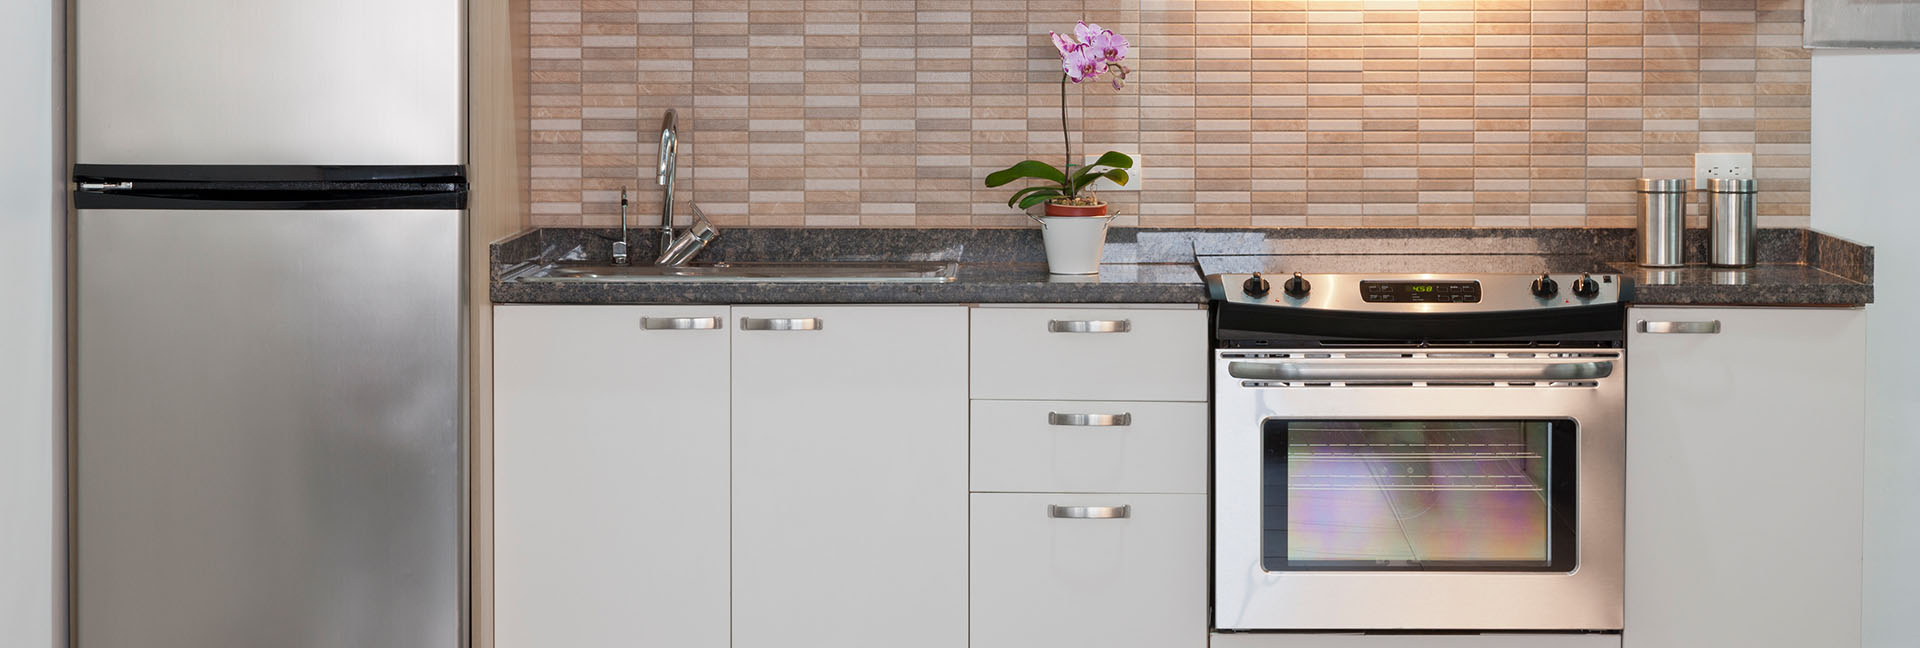 347 305 5757 Find Best Appliance Repair Services In New York